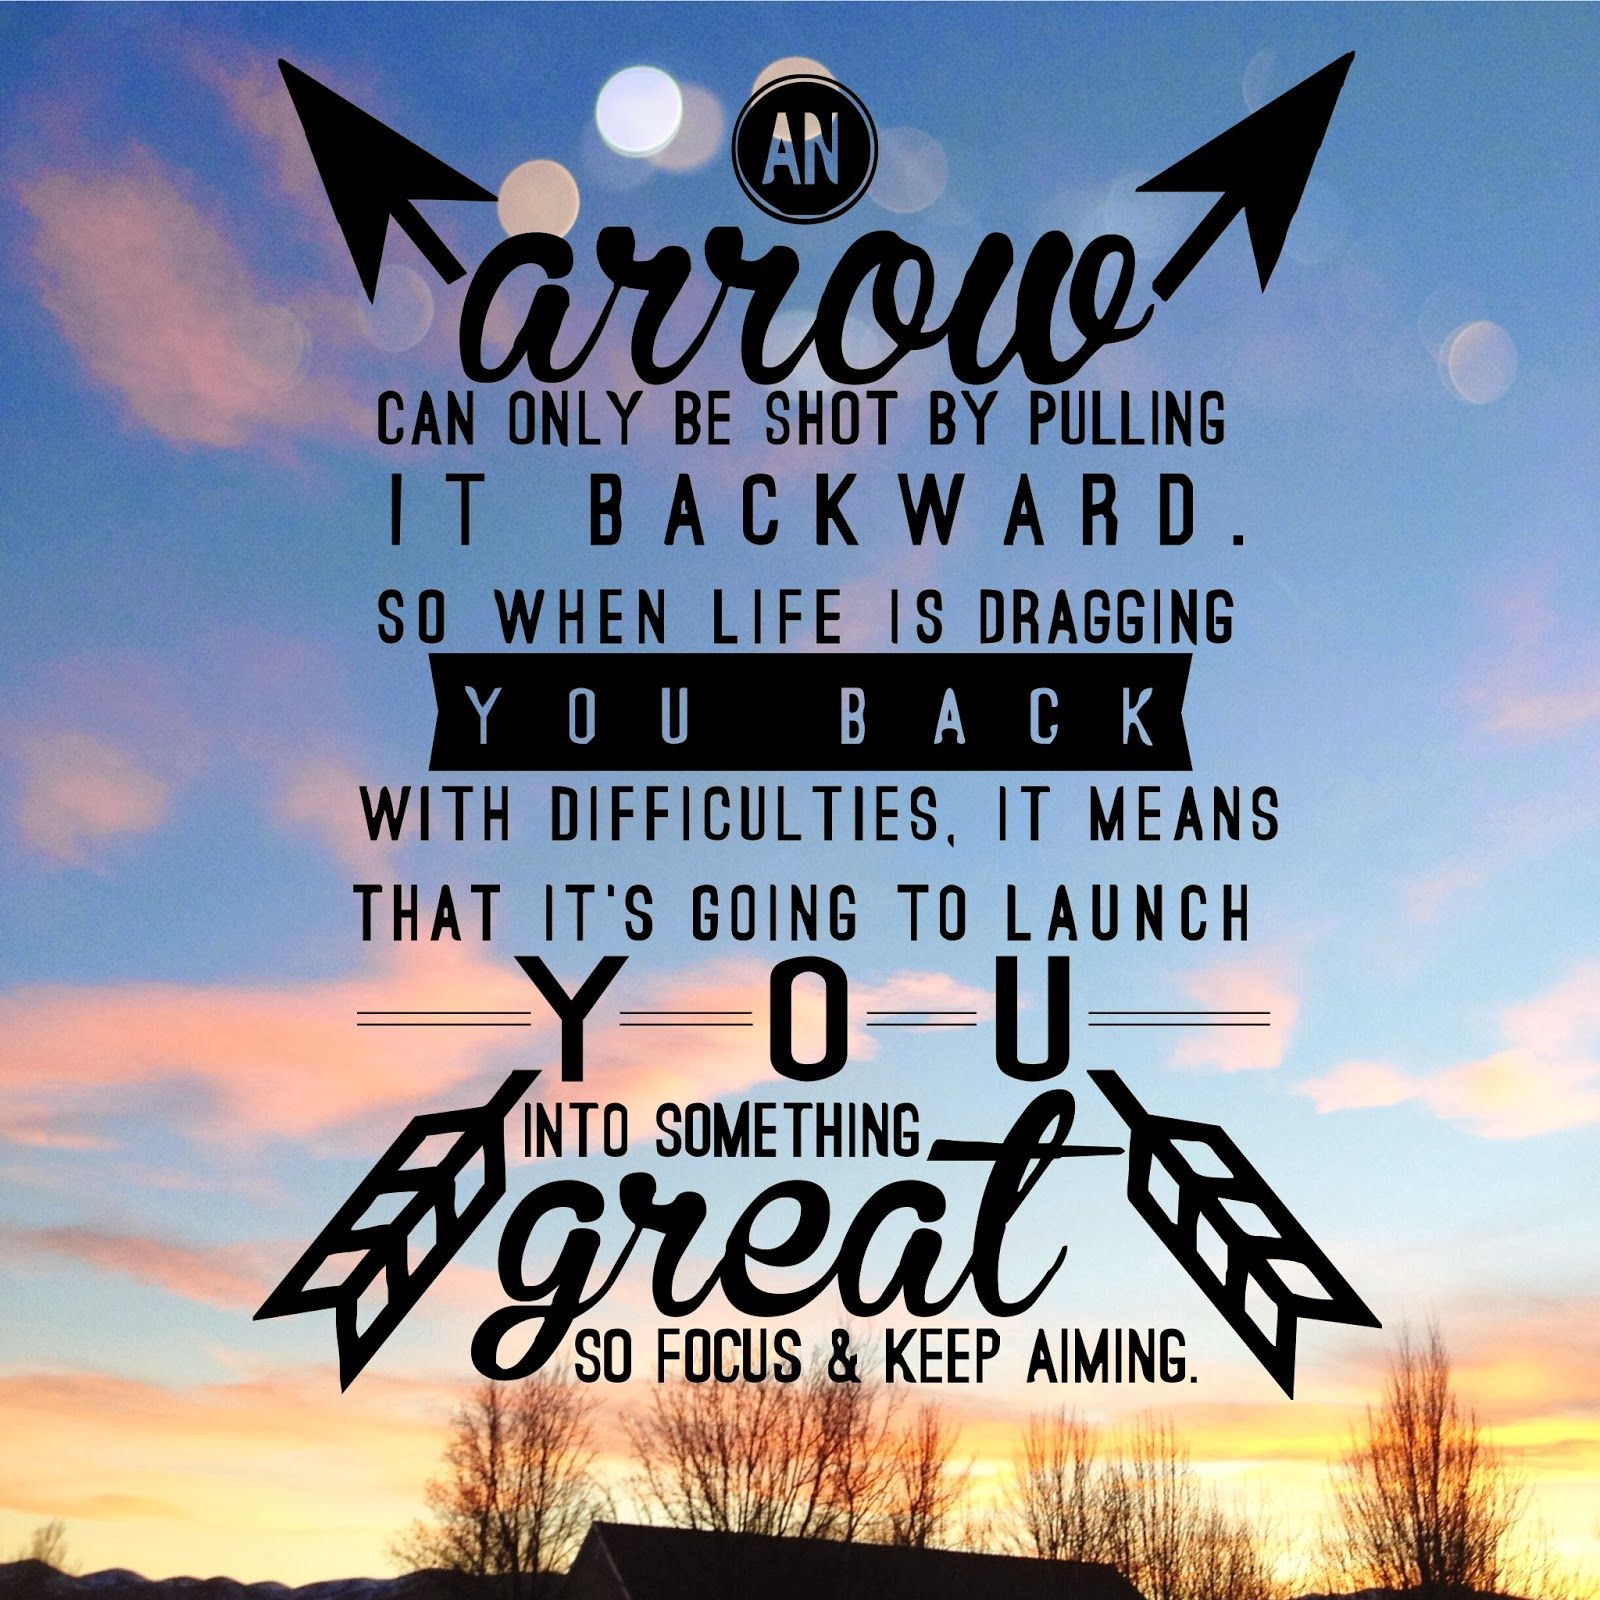 A Quote About Life: An Arrow Can Only Be Shot By Pulling Backward. So When